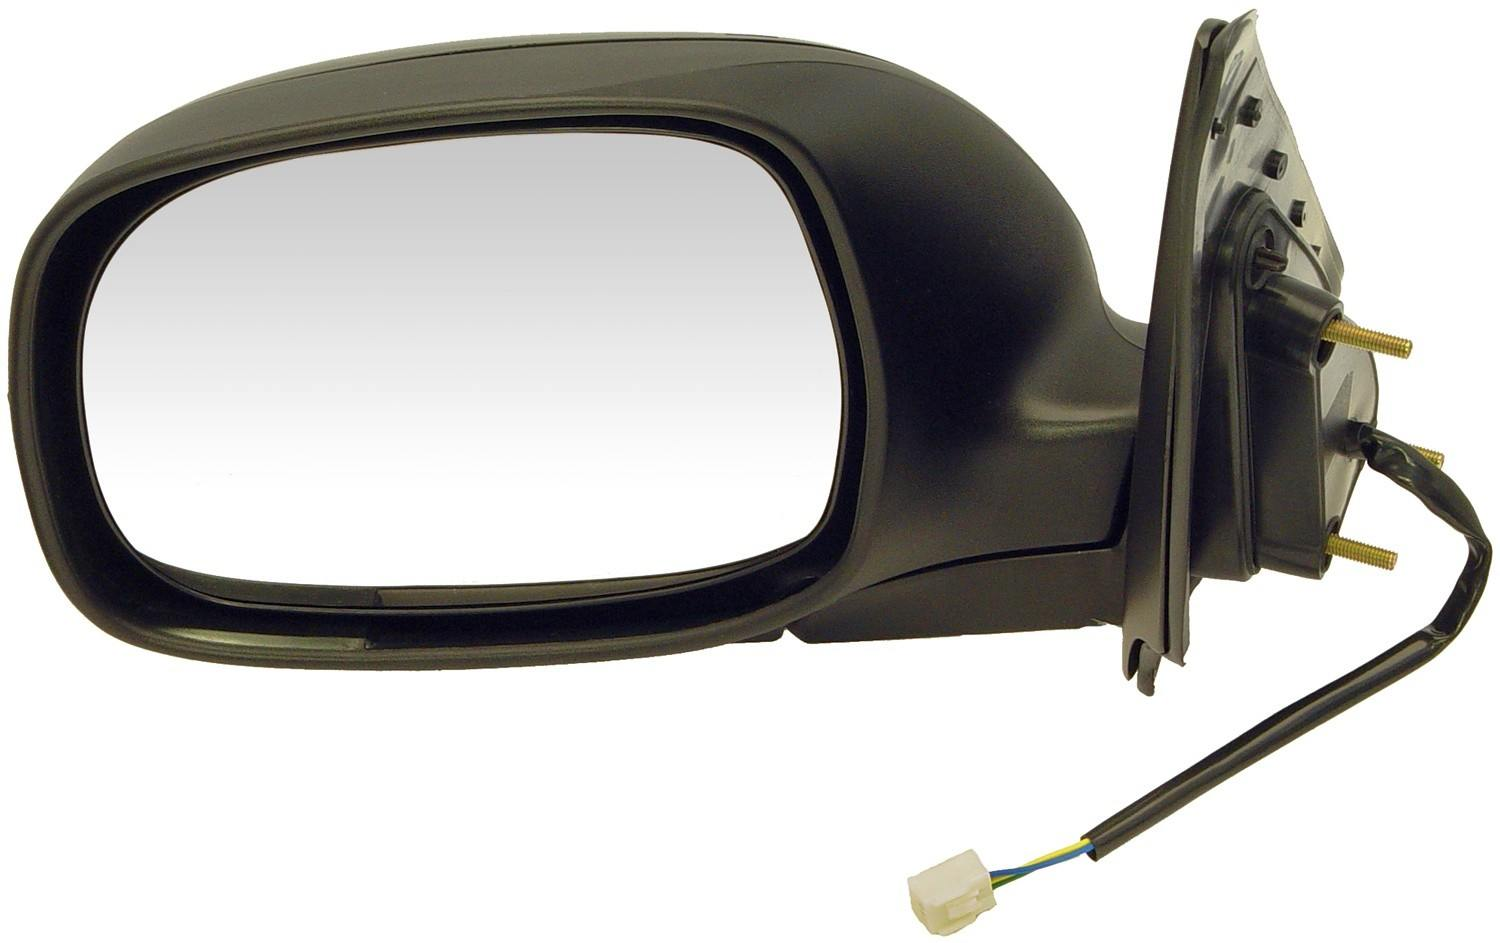 DORMAN - Door Mirror (Left) - DOR 955-1439